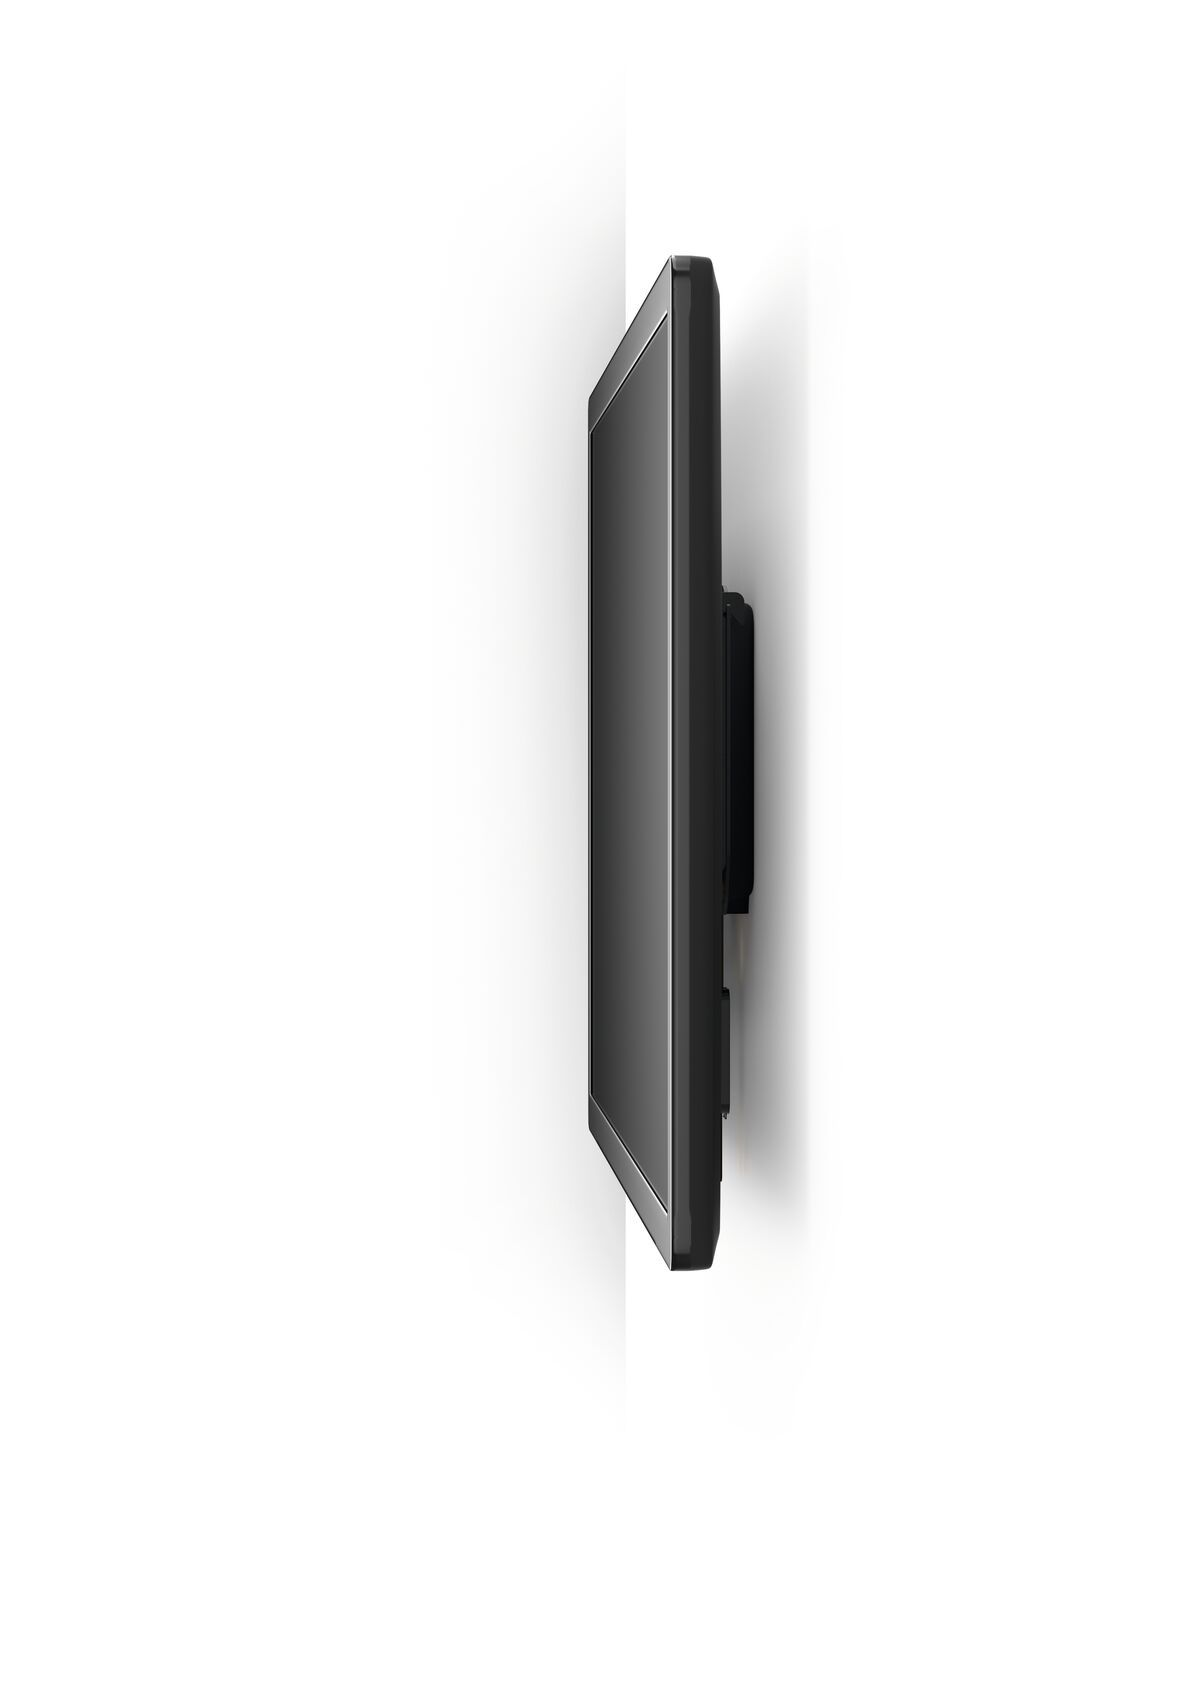 Vogel's WALL 2005 Fixed TV Wall Mount - Suitable for White wall